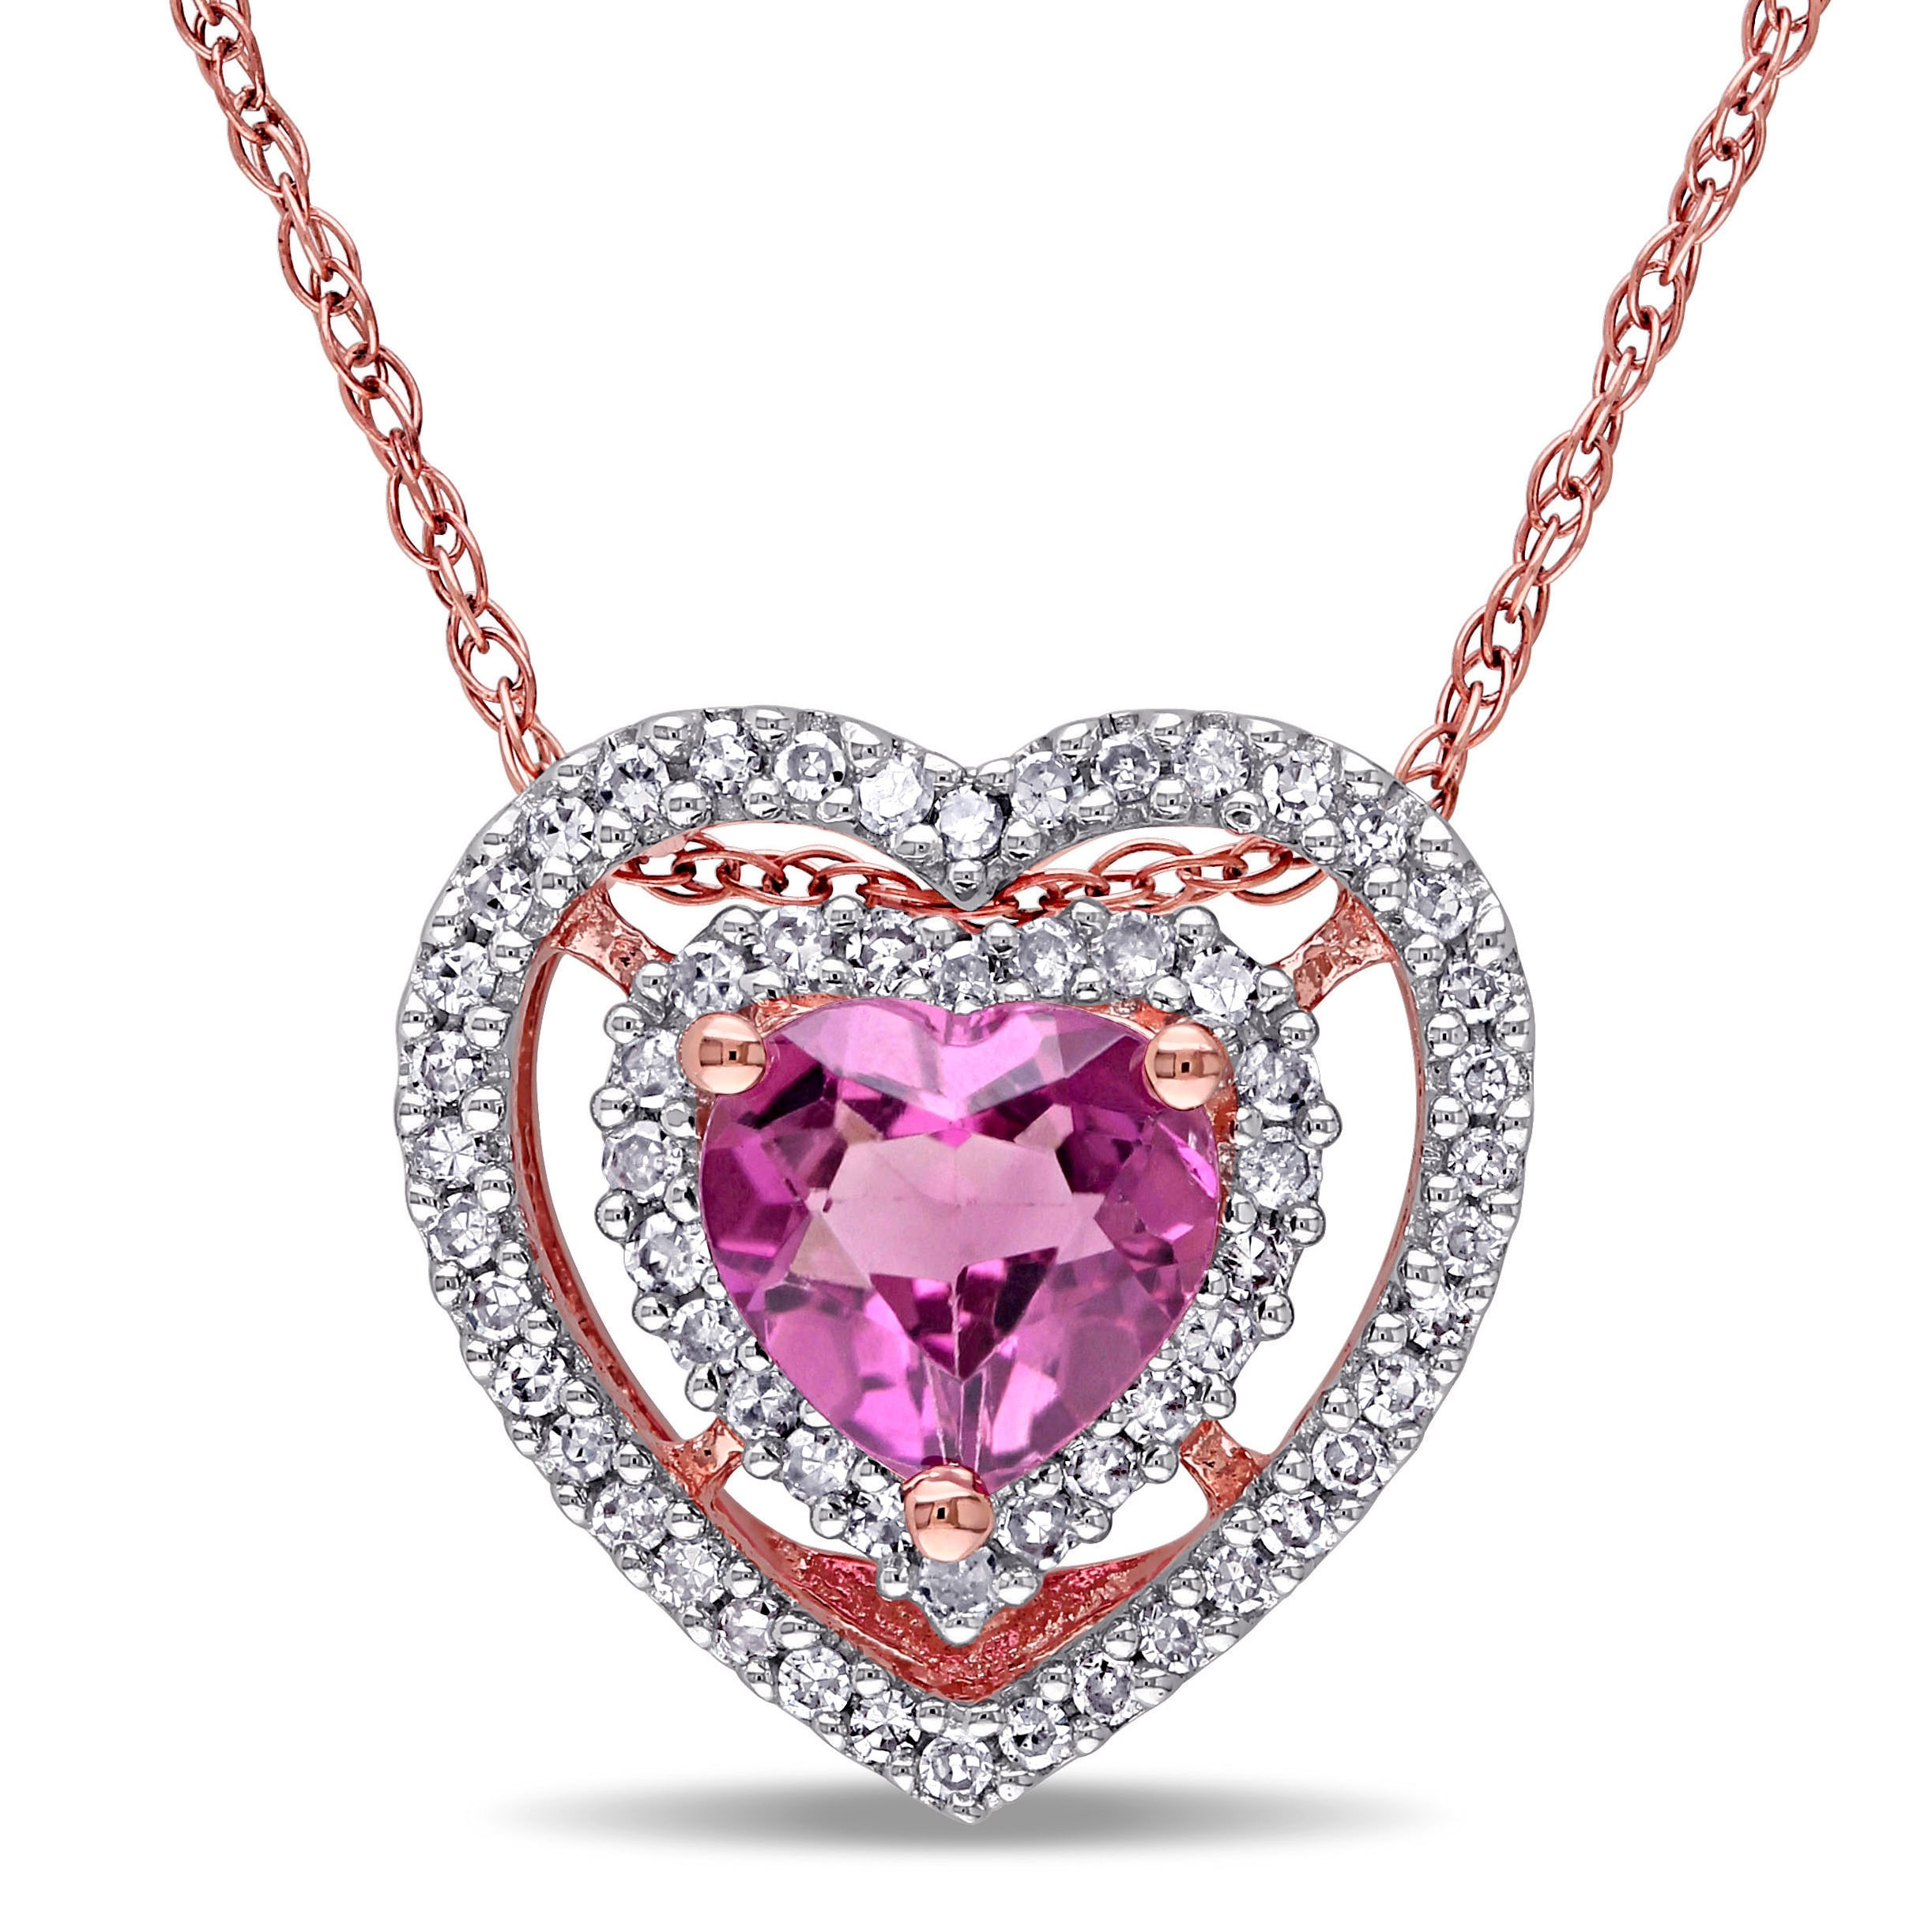 Miadora 10k Rose Gold Pink Tourmaline and 1 5ct TDW Diamond Necklace (G-H, I1-I2) by Overstock